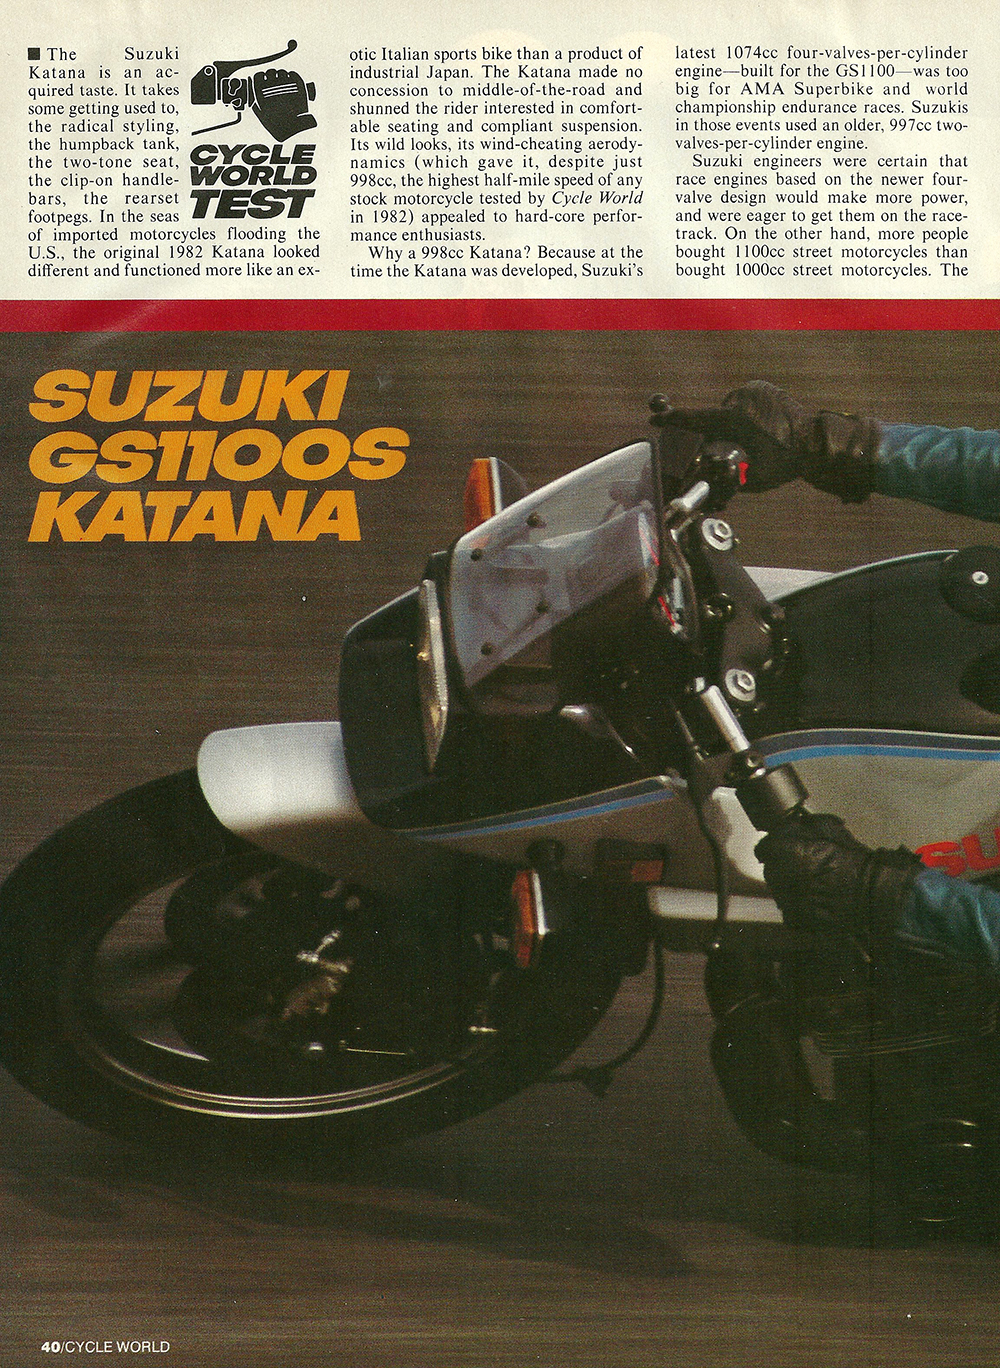 1983 Suzuki GS1100 S Katana road test 01.jpg